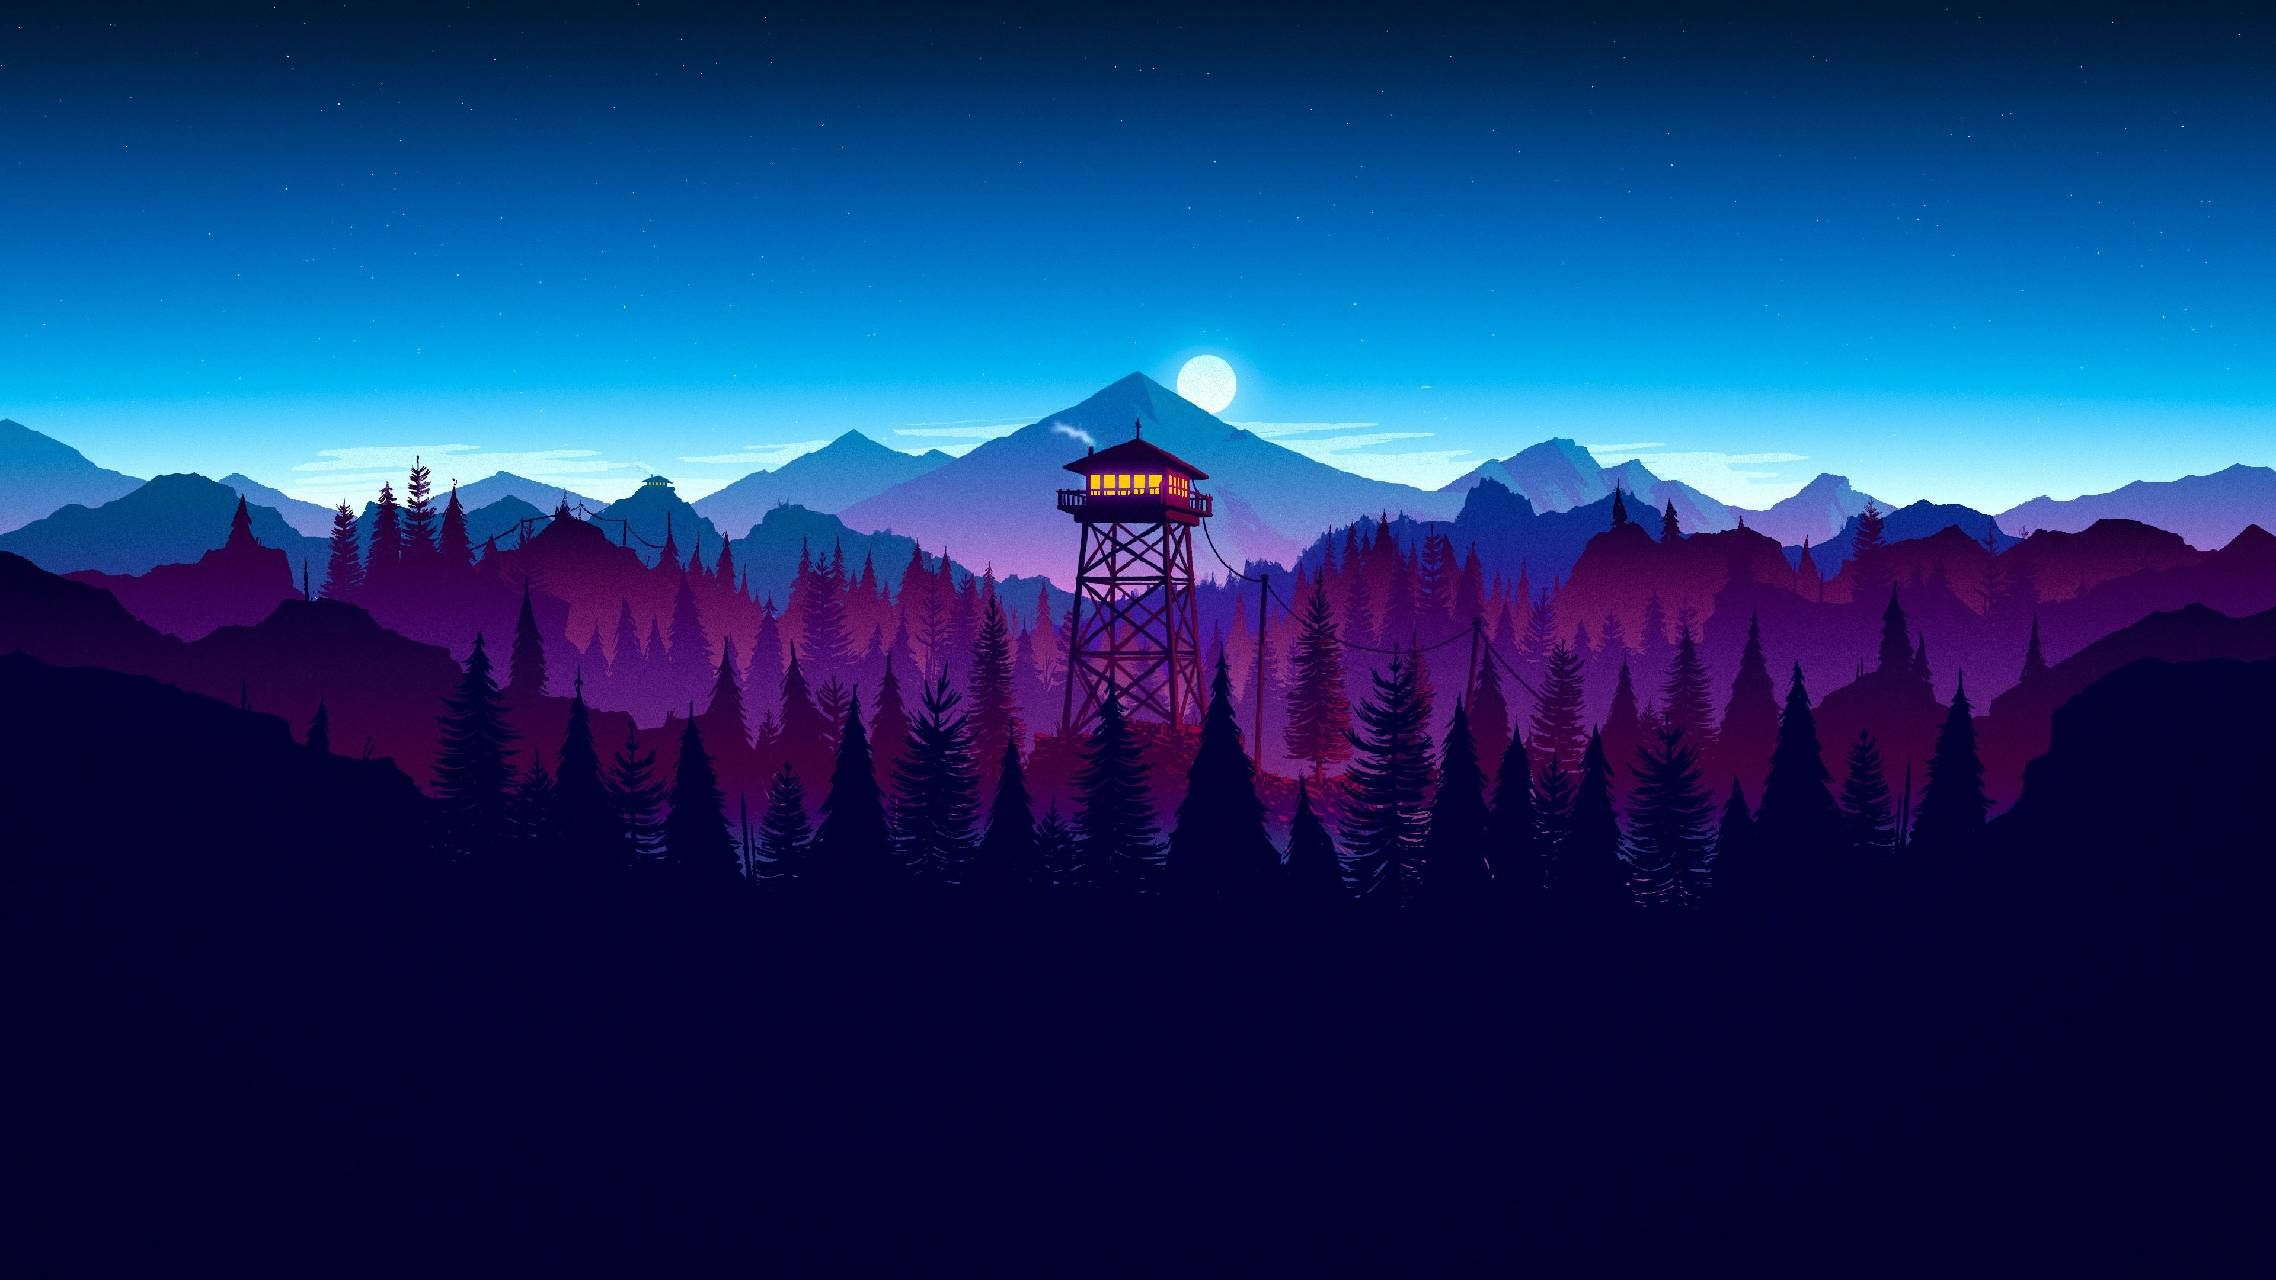 Download Firewatch Night Wallpaper By Leingrad 23 Free On Zedge Now Browse Millions Of Popular Firewat In 2020 Sunset Artwork Digital Wallpaper Gaming Wallpapers